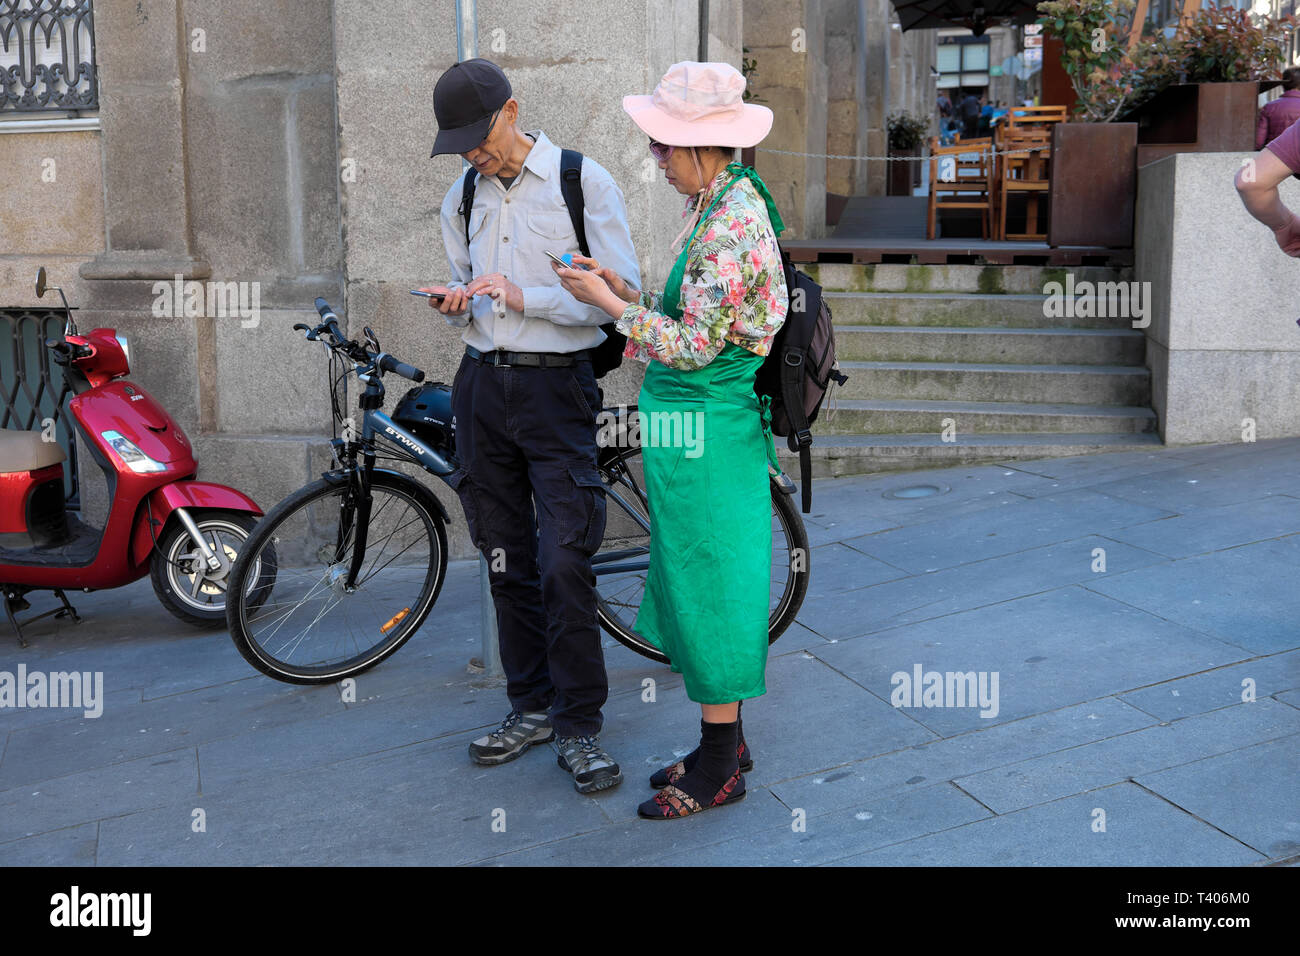 An older Japanese couple navigating the streets of Porto with maps on their mobile phones in a street in Portugal Europe   KATHY DEWITT Stock Photo